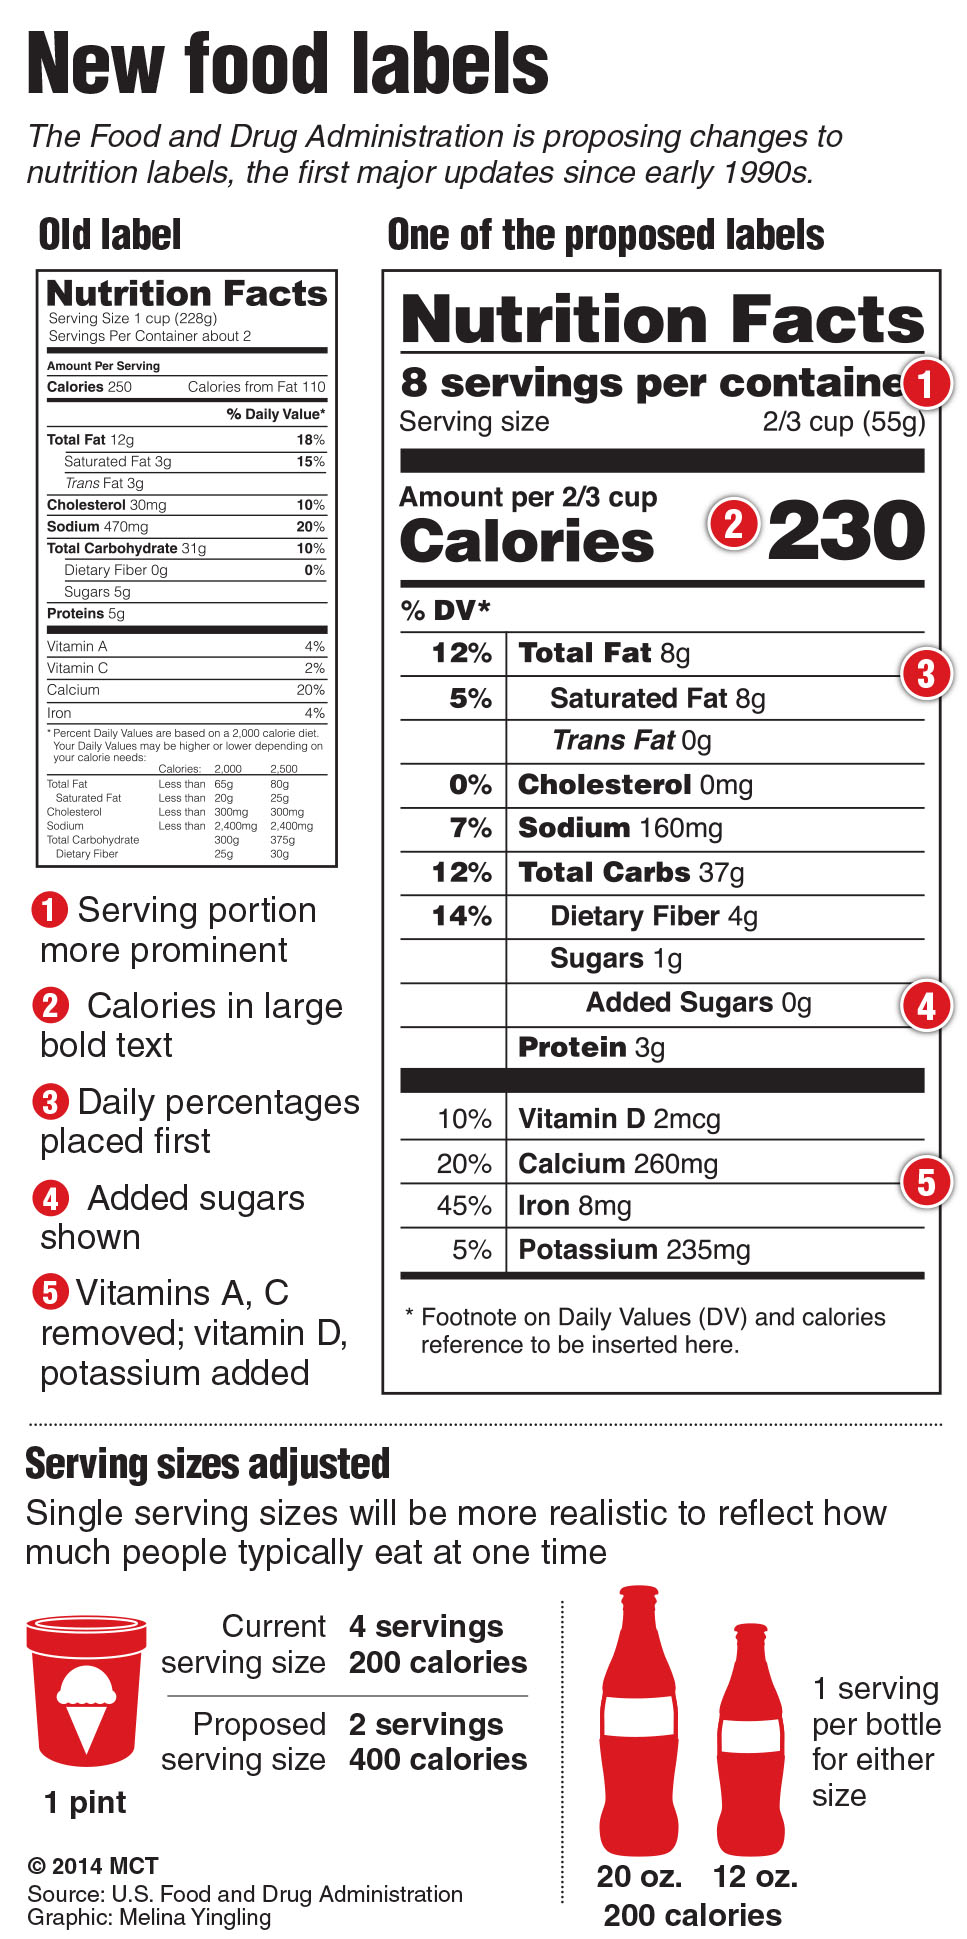 Uncategorized Nutrition Label Worksheet newsela u s food labels to get a major revamp washington on thursday the obama administration proposed first of nutrition in more than two decades